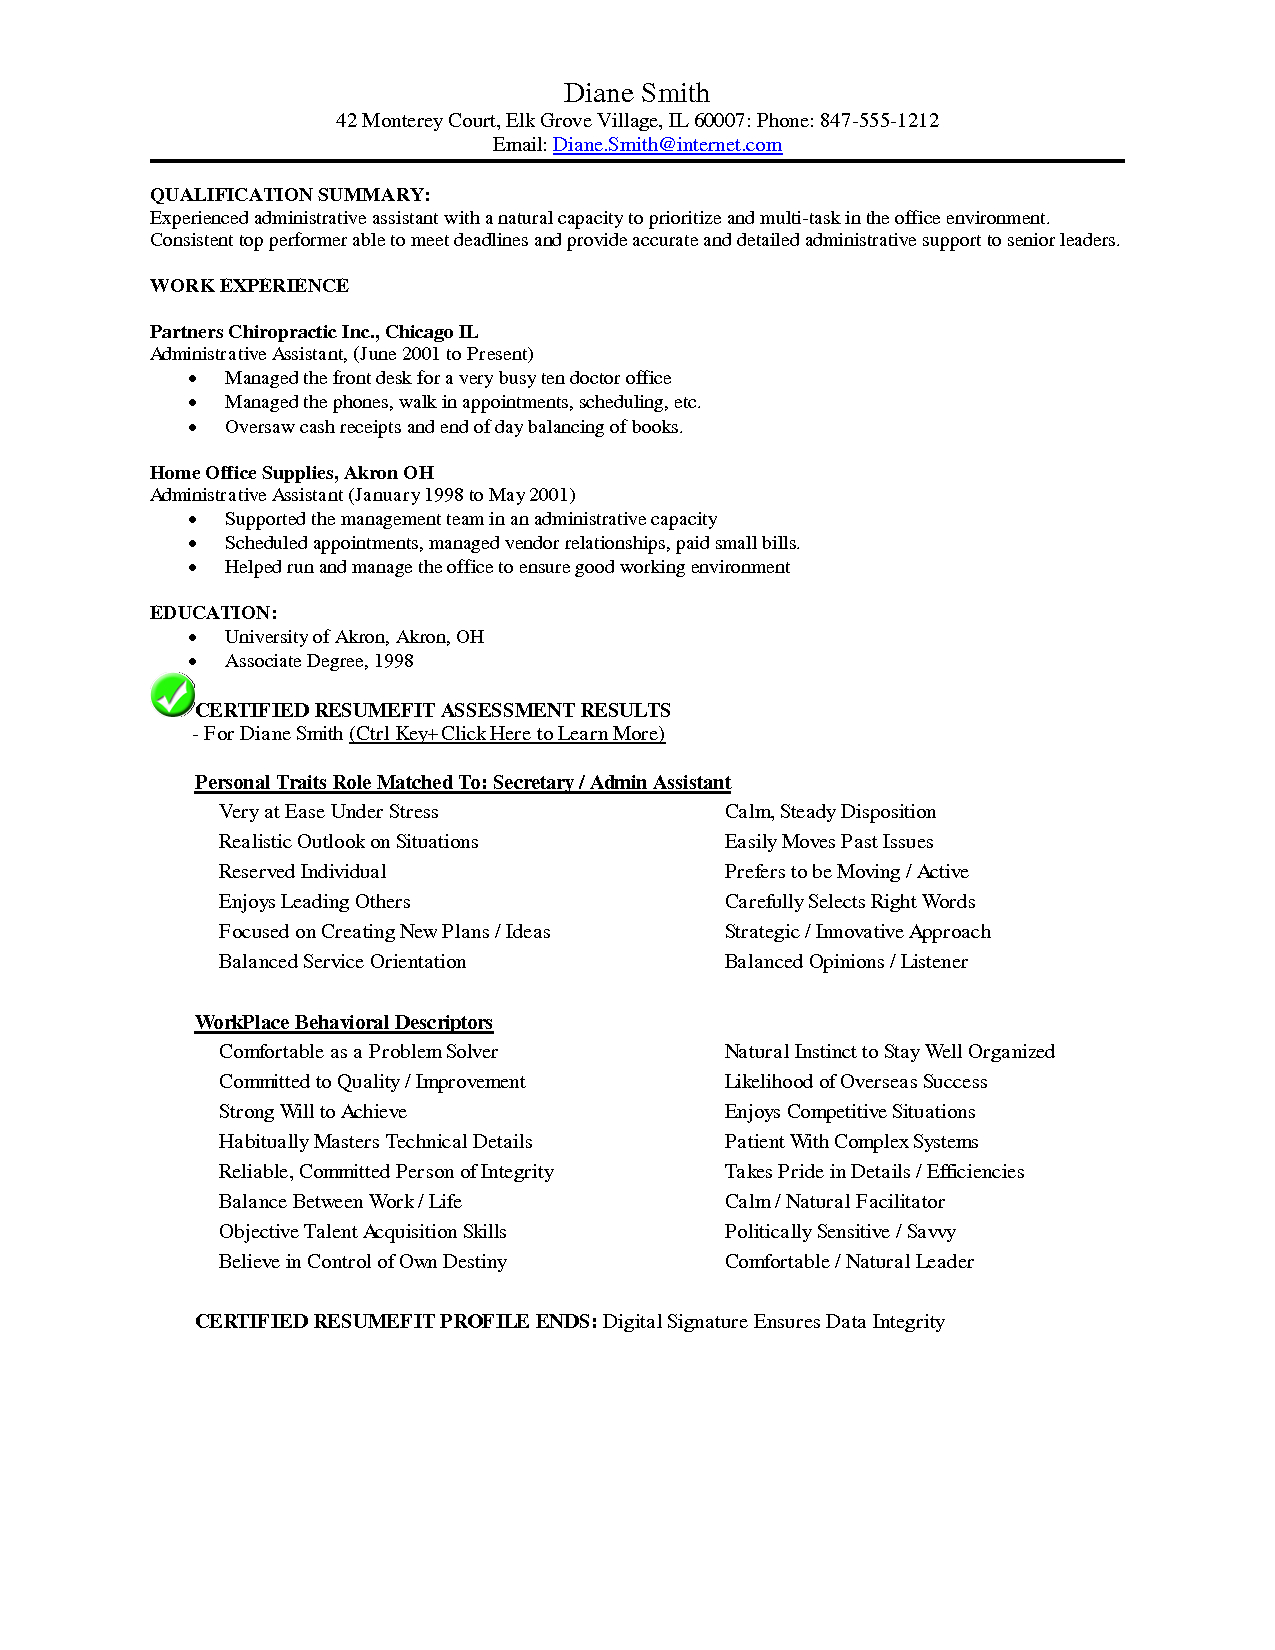 Medical Office Manager Resume Template - Chiropractic Resume Example Resumes Pinterest